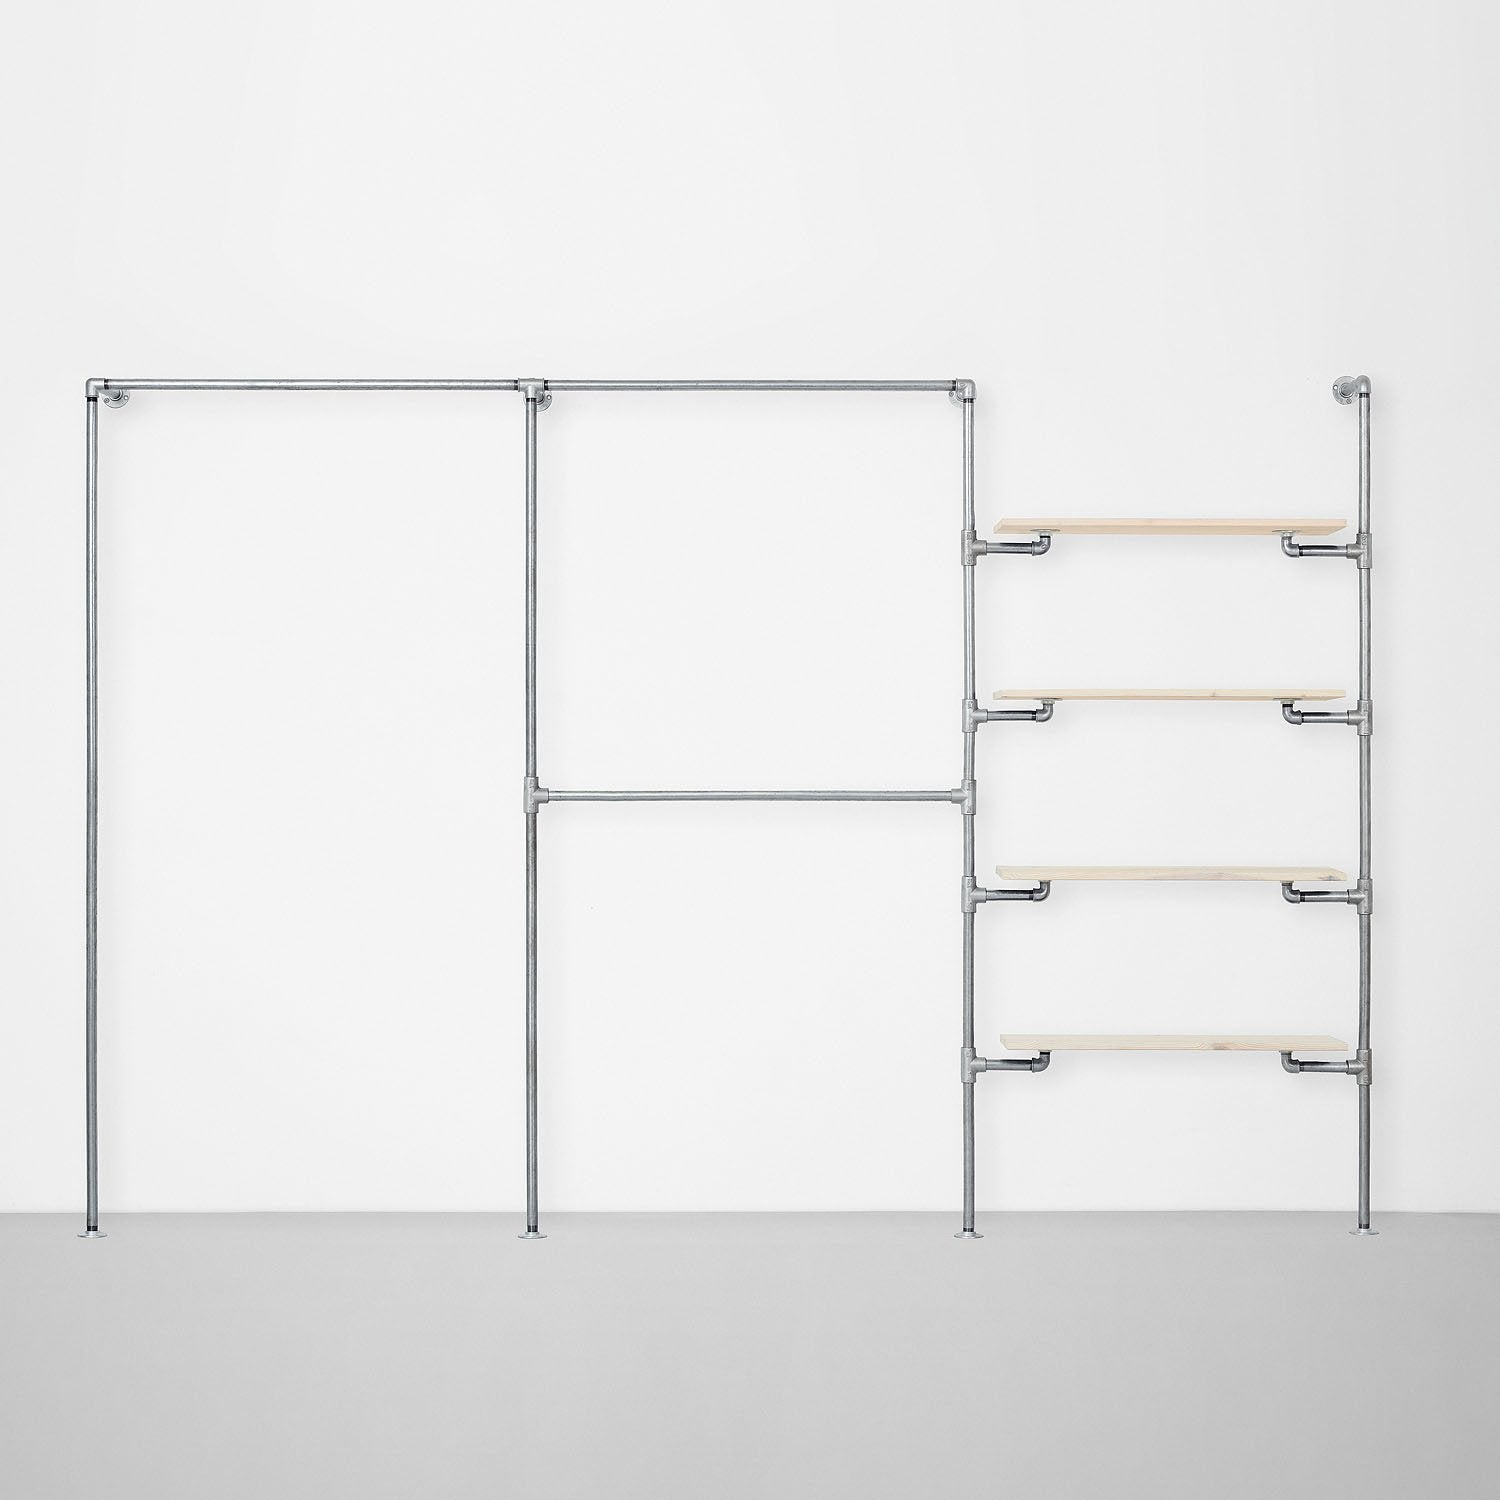 The Walk-In 3 row wardrobe system - (1 rail / 2 rails / 4 shelves)